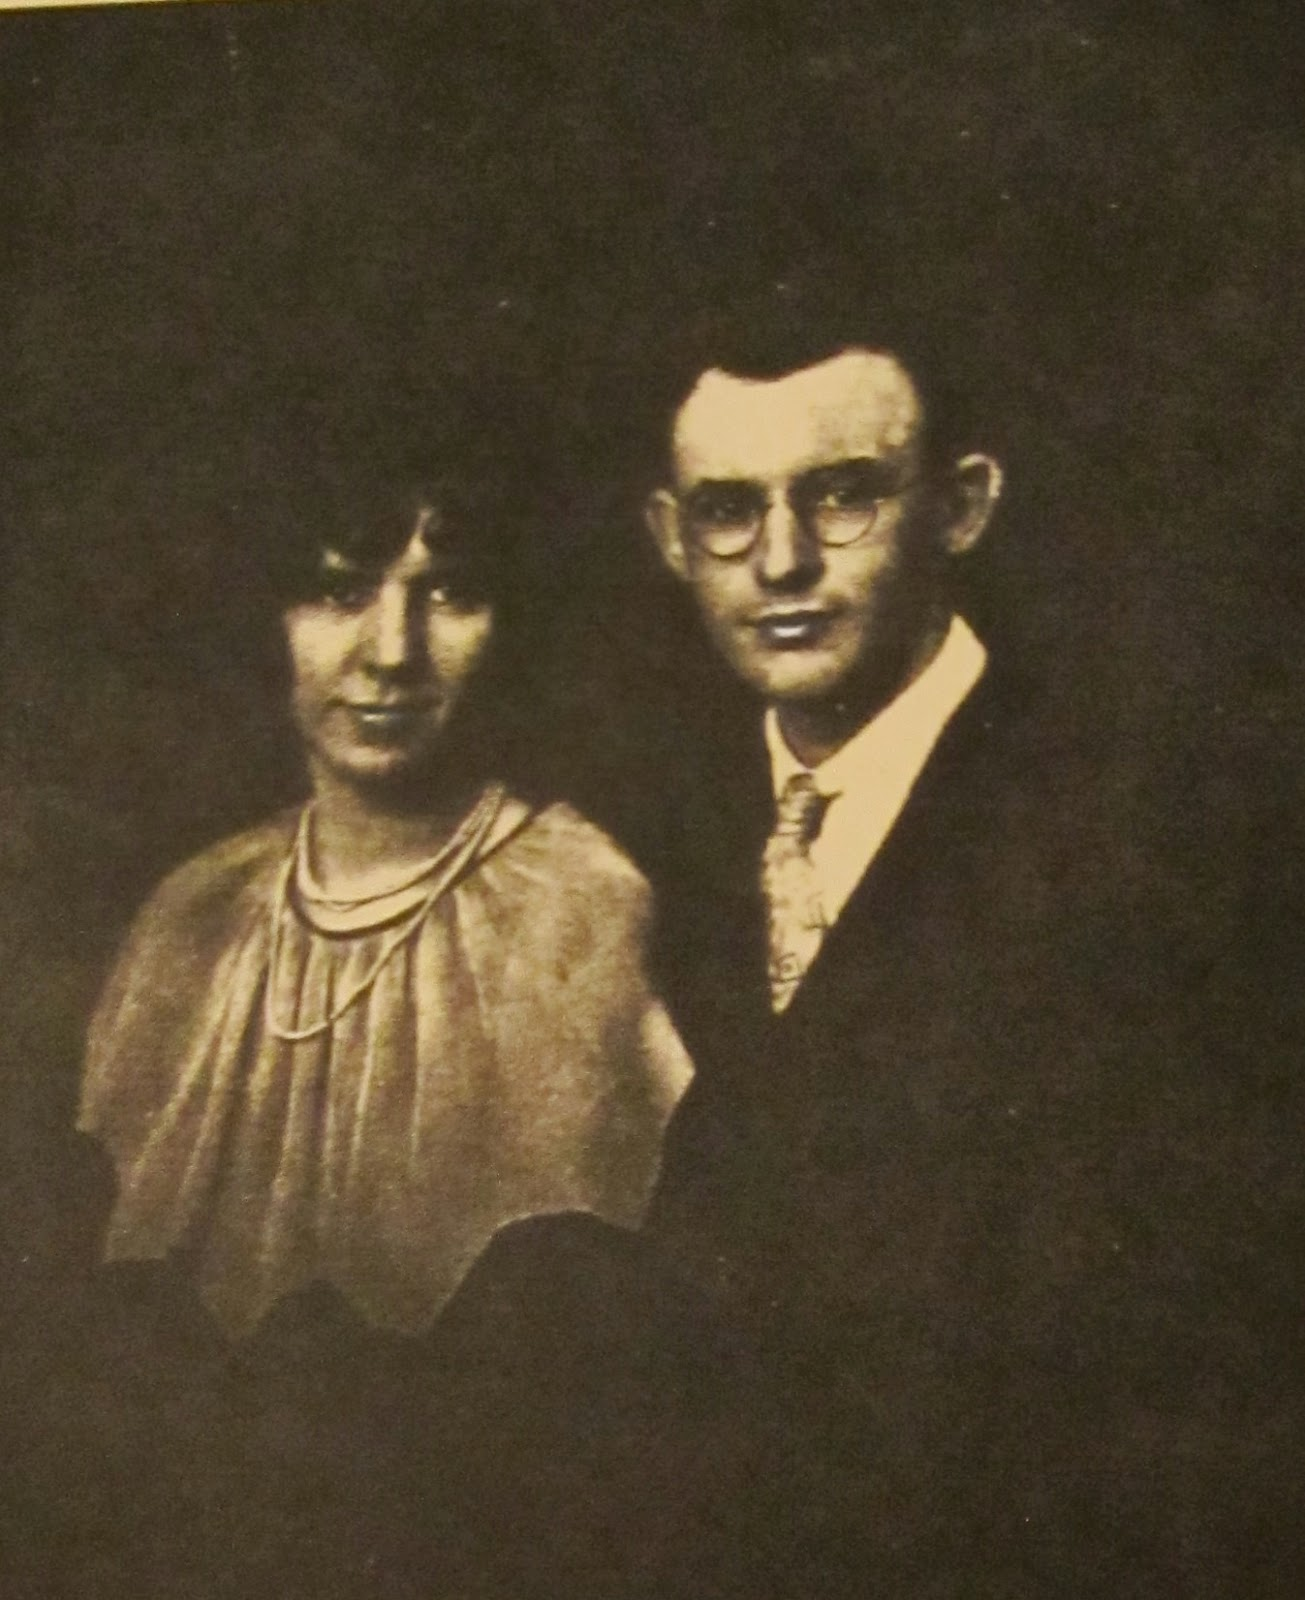 Climbing My Family Tree: Carl and Anna (Bennett) Henn, circa 1929 - wedding picture, I think